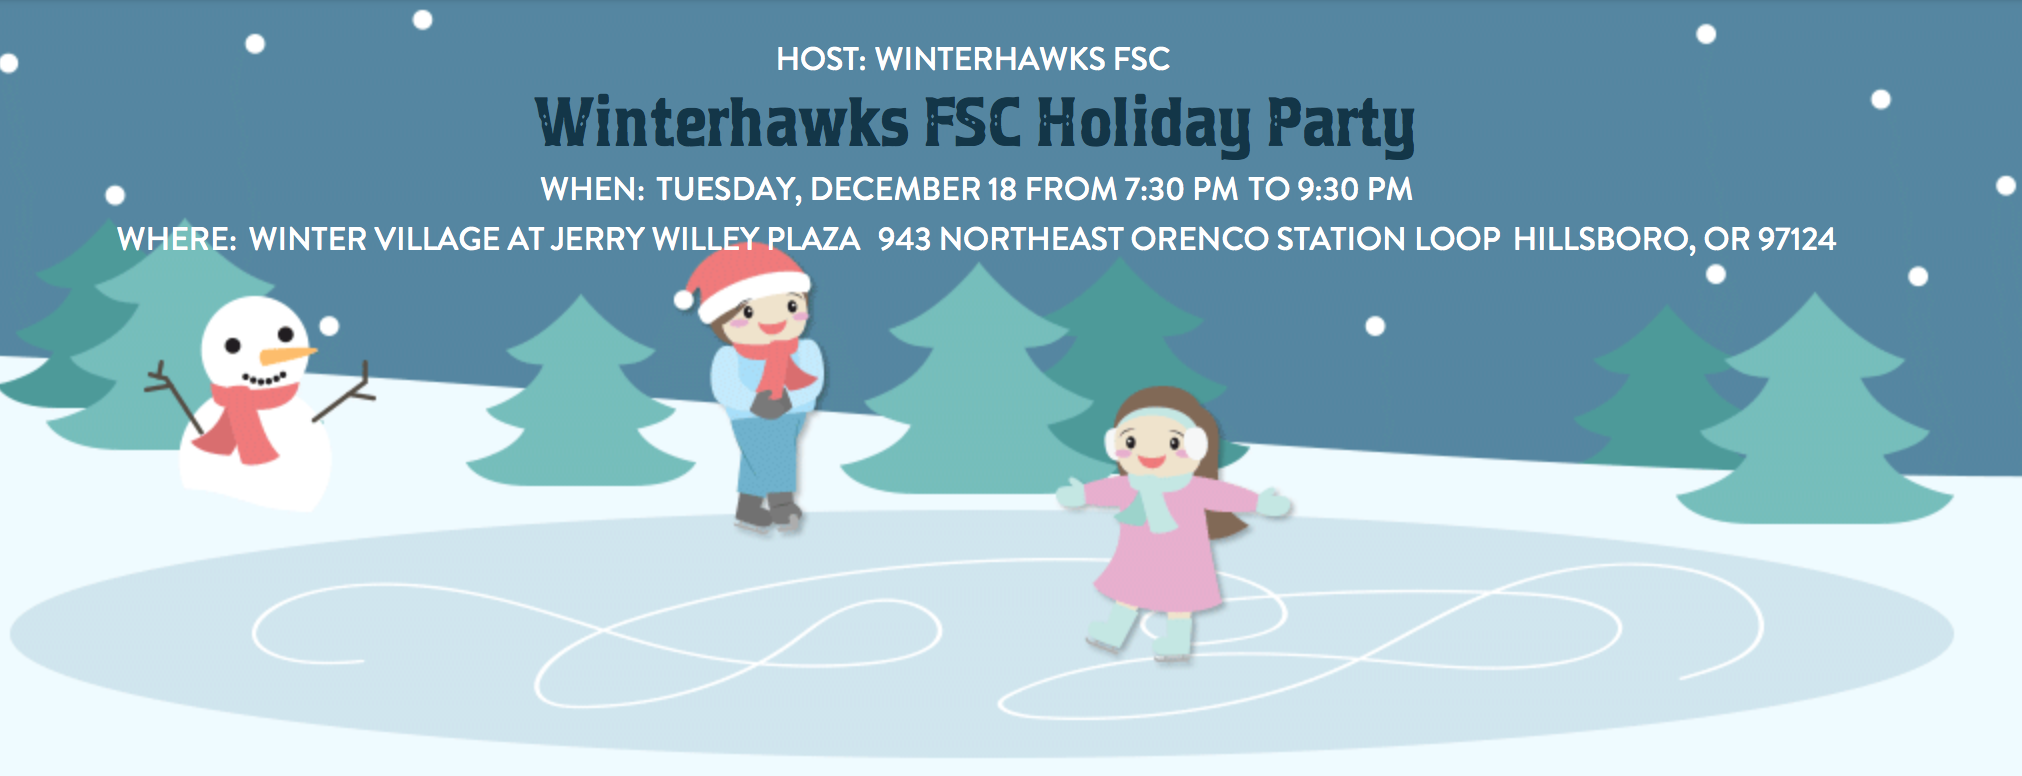 SAVE THE DATE - TUESDAY, DECEMBER 18th   7:30P - 9:30P  Happy Holidays Winterhawks FSC Family:  Please join us in merriment and treats for our Annual Holiday Party at Winter Village at Orenco Station!   White Elephant Alert: Skaters, if you would like to participate in the fun White Elephant Game, please bring a silly/fun gift to the party (up to $10 max)!   Skates will be provided.  For more information: https://www.hillsboro-oregon.gov/departments/parks-recreation/recreation-fun-/special-events-/winter-village/-curm-12/-cury-2018